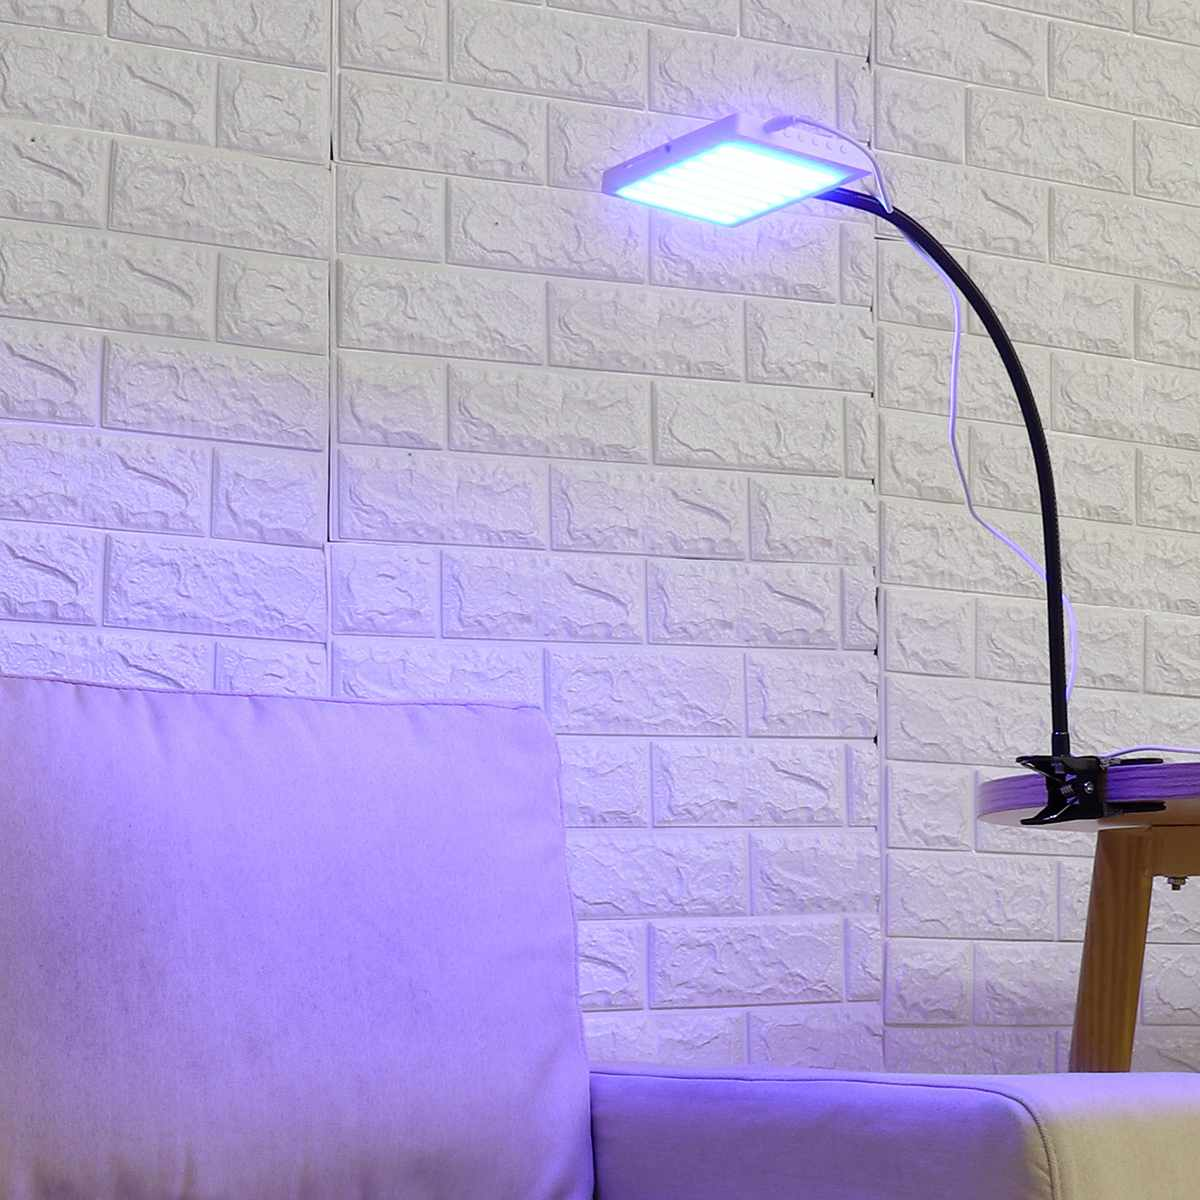 LED Light Skin Rejuvenation Lamp for Skin Relief Improve Sleep Blood Circulation Grow Light Set with Remote Control